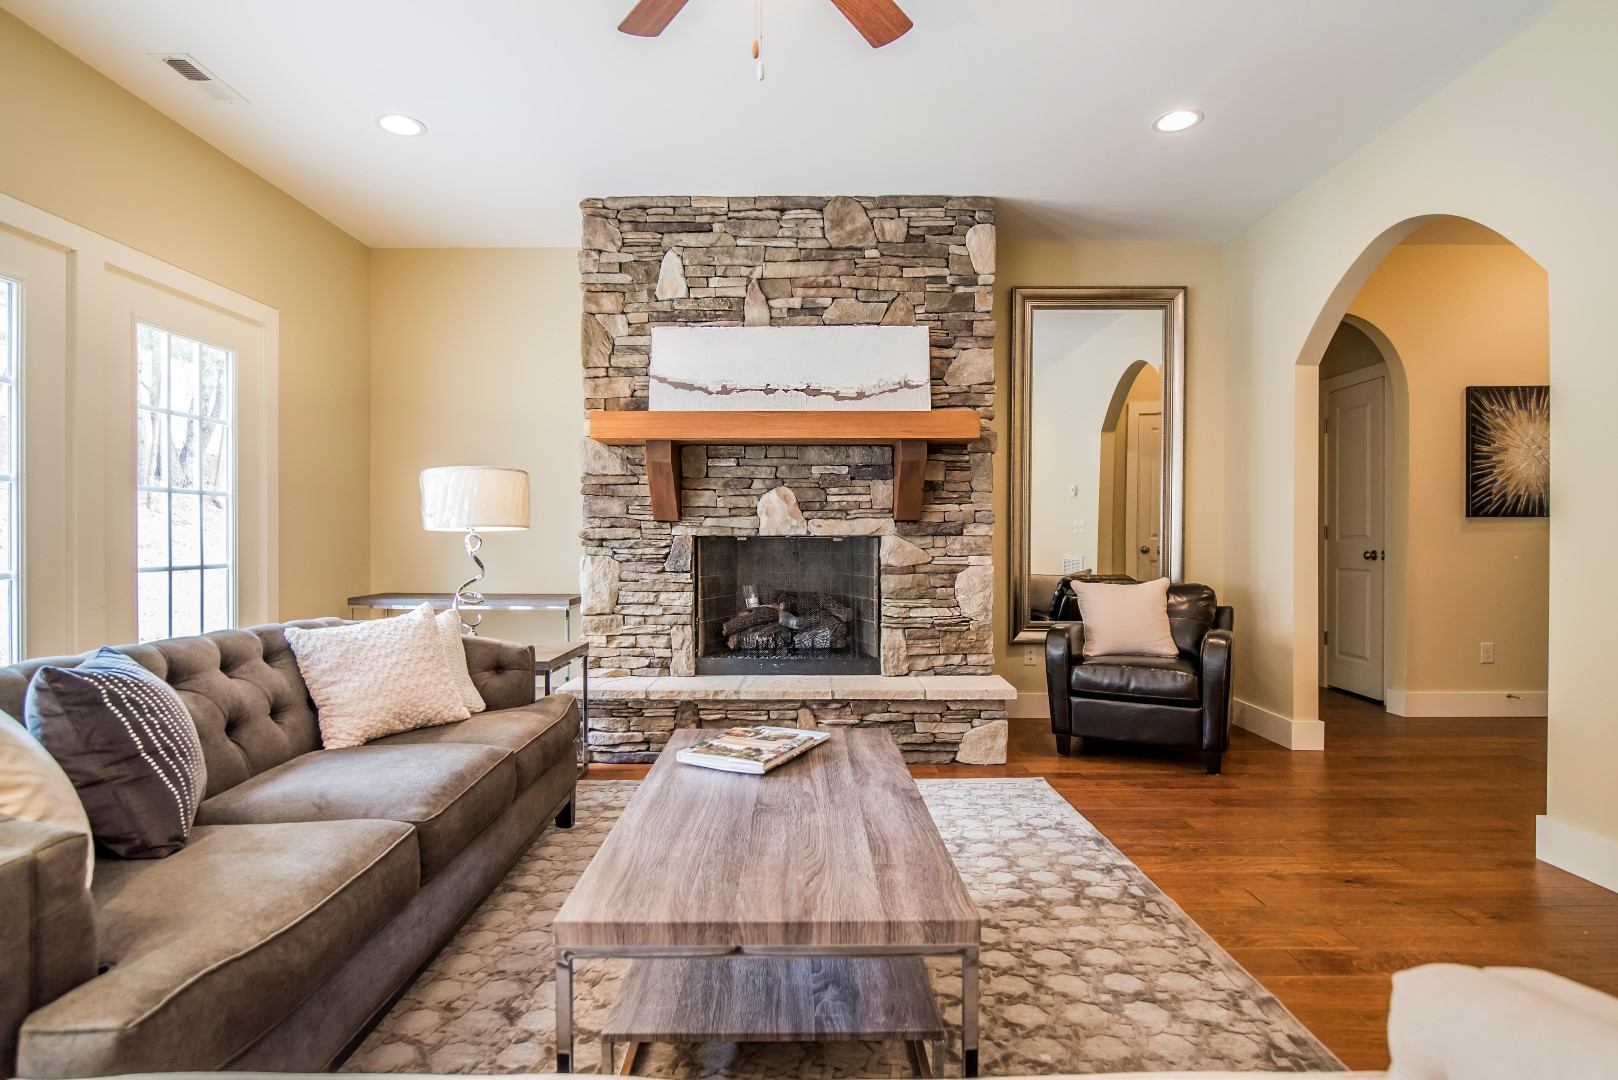 Living room with coffee table, hardwood floors, and stone fireplace.